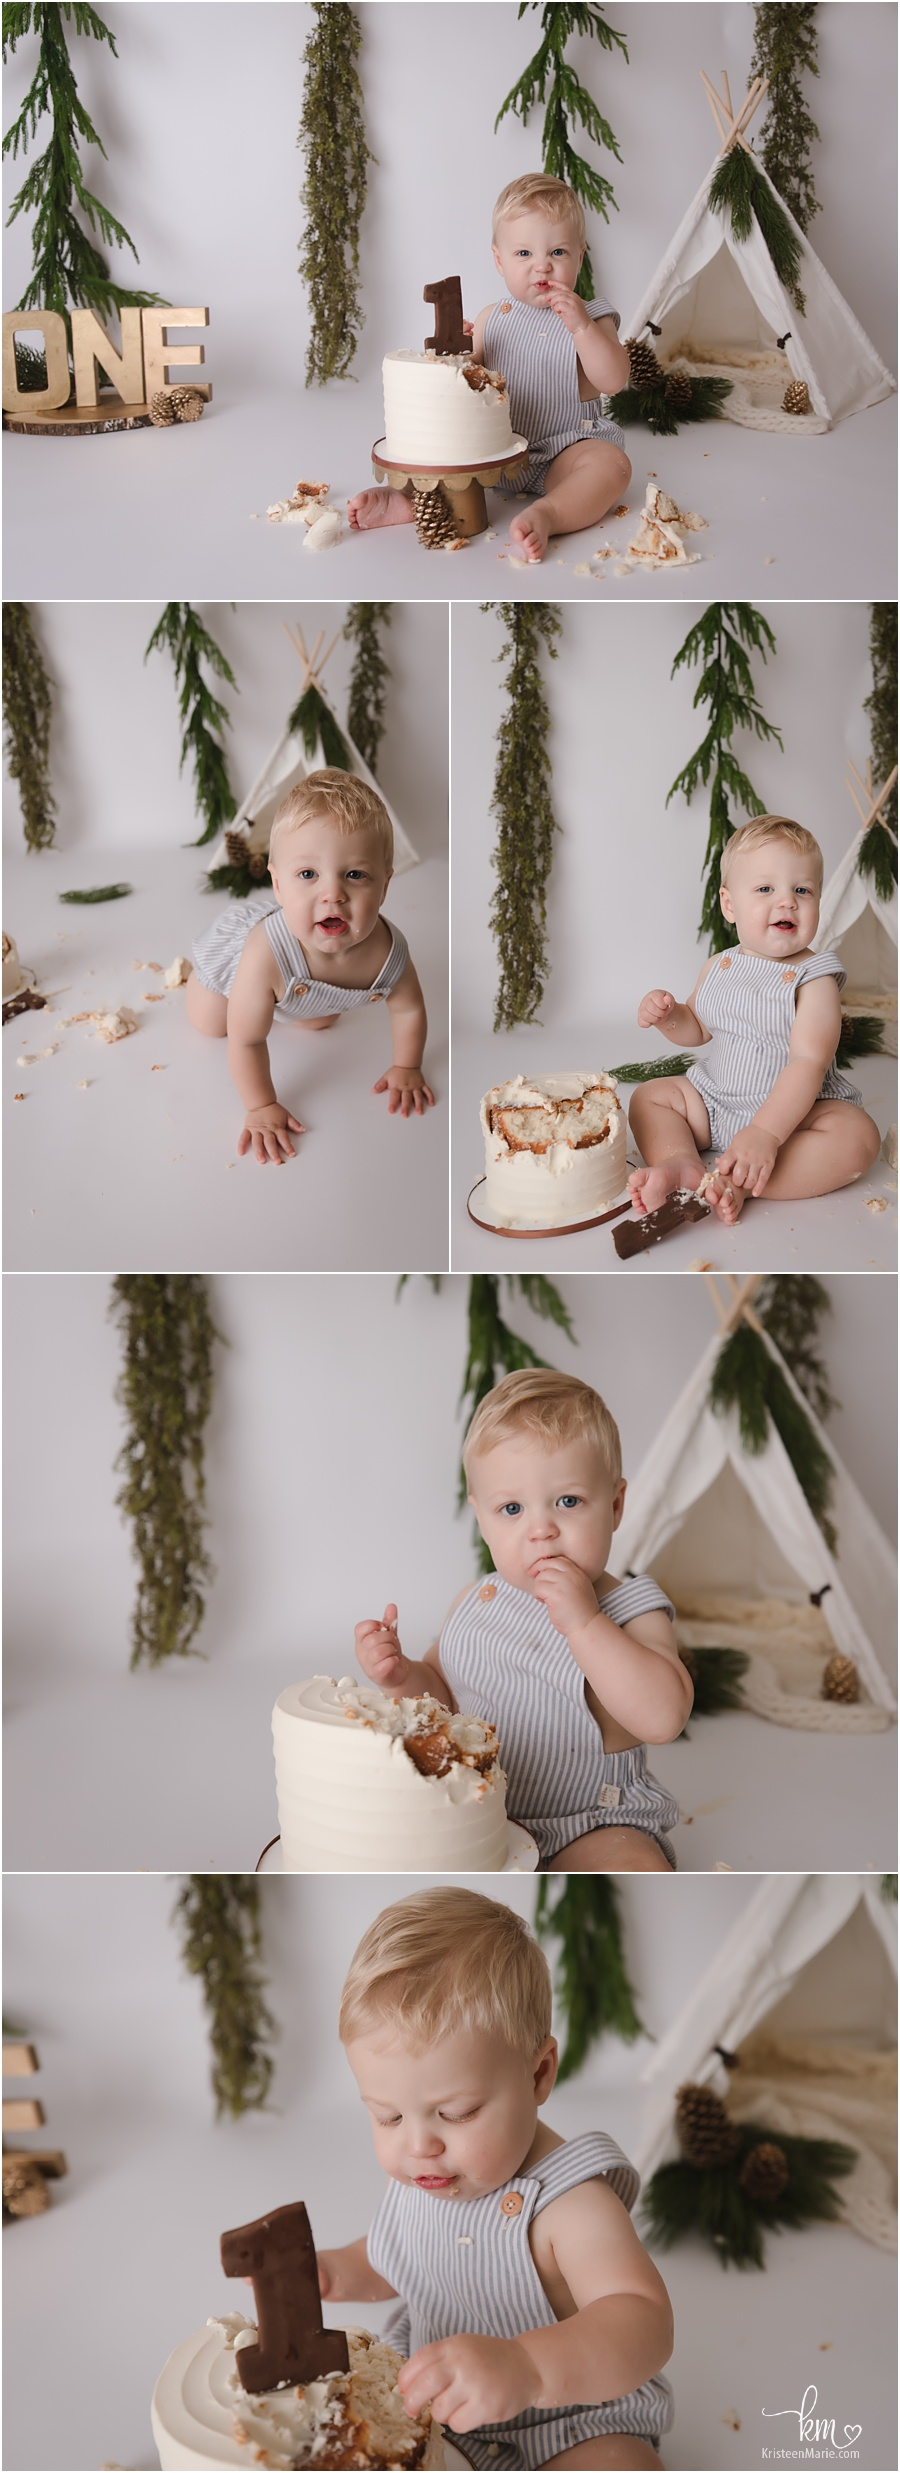 evergreen cake smash set-up for baby's 1st birthday